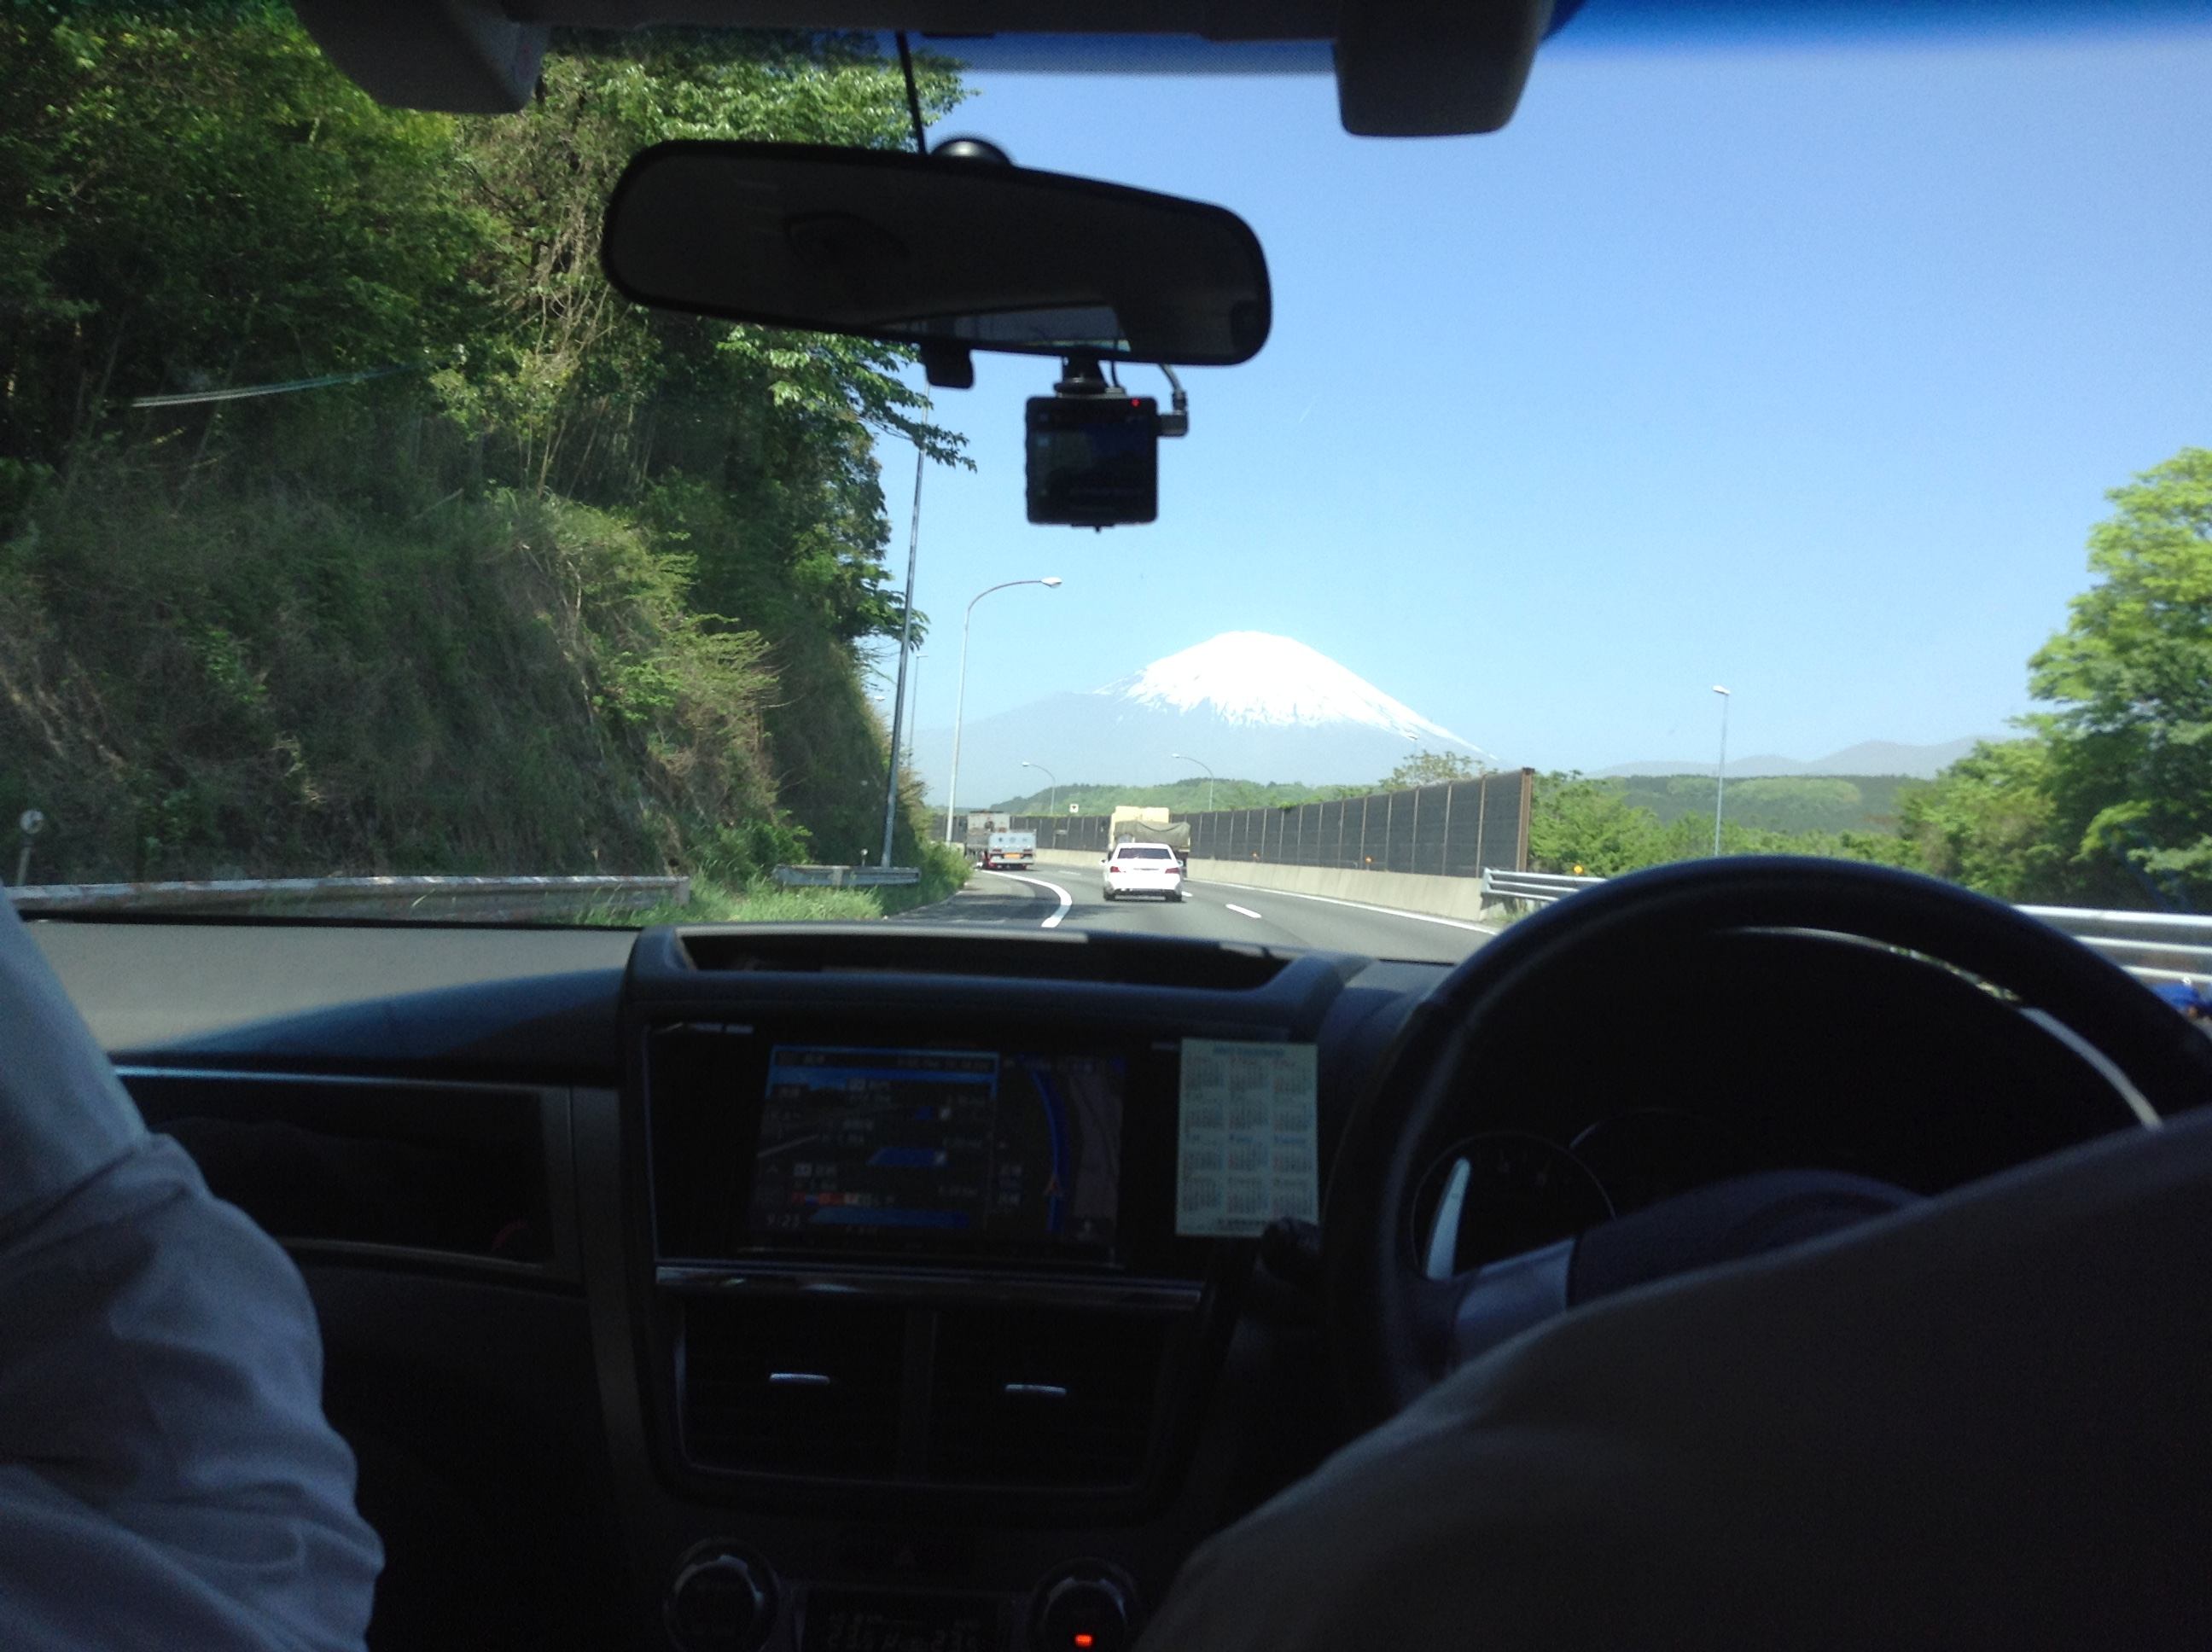 Mount Fuji from new Tomei Expressway